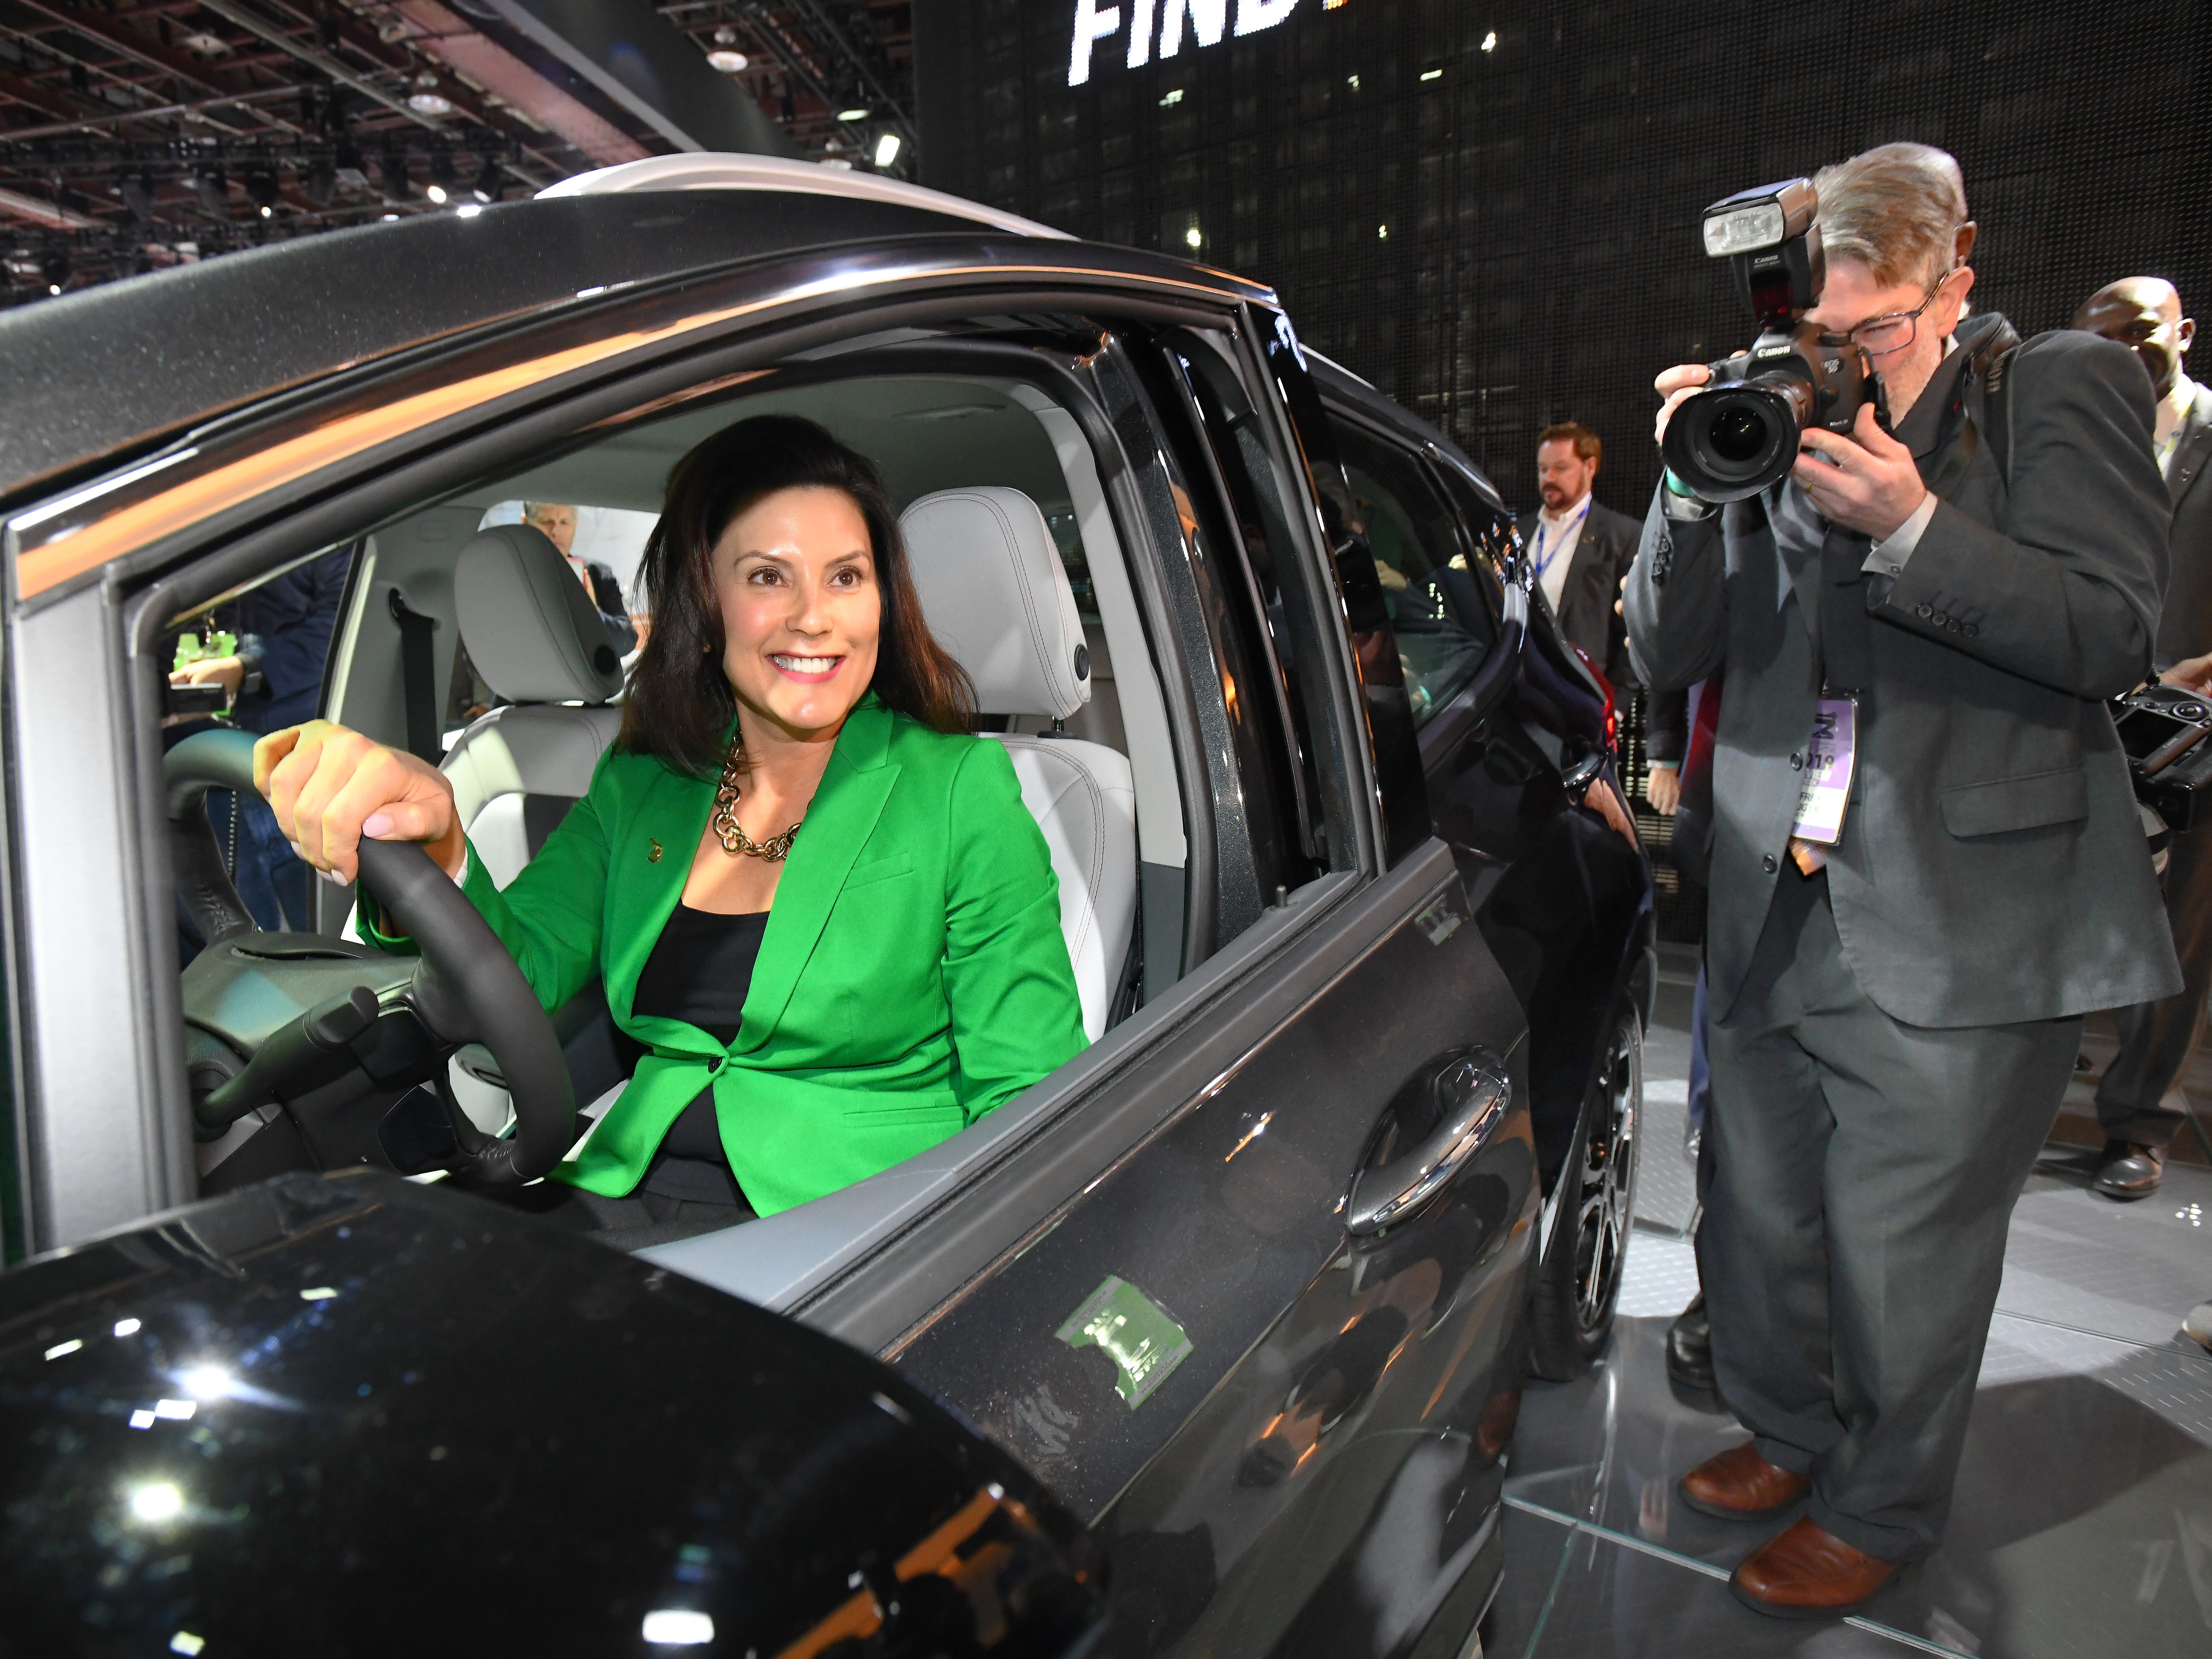 Members of the media follow around Michigan Governor Gretchen Whitmer, here trying out a Chevrolet Bolt EV, during a tour of the North American International Auto Show.